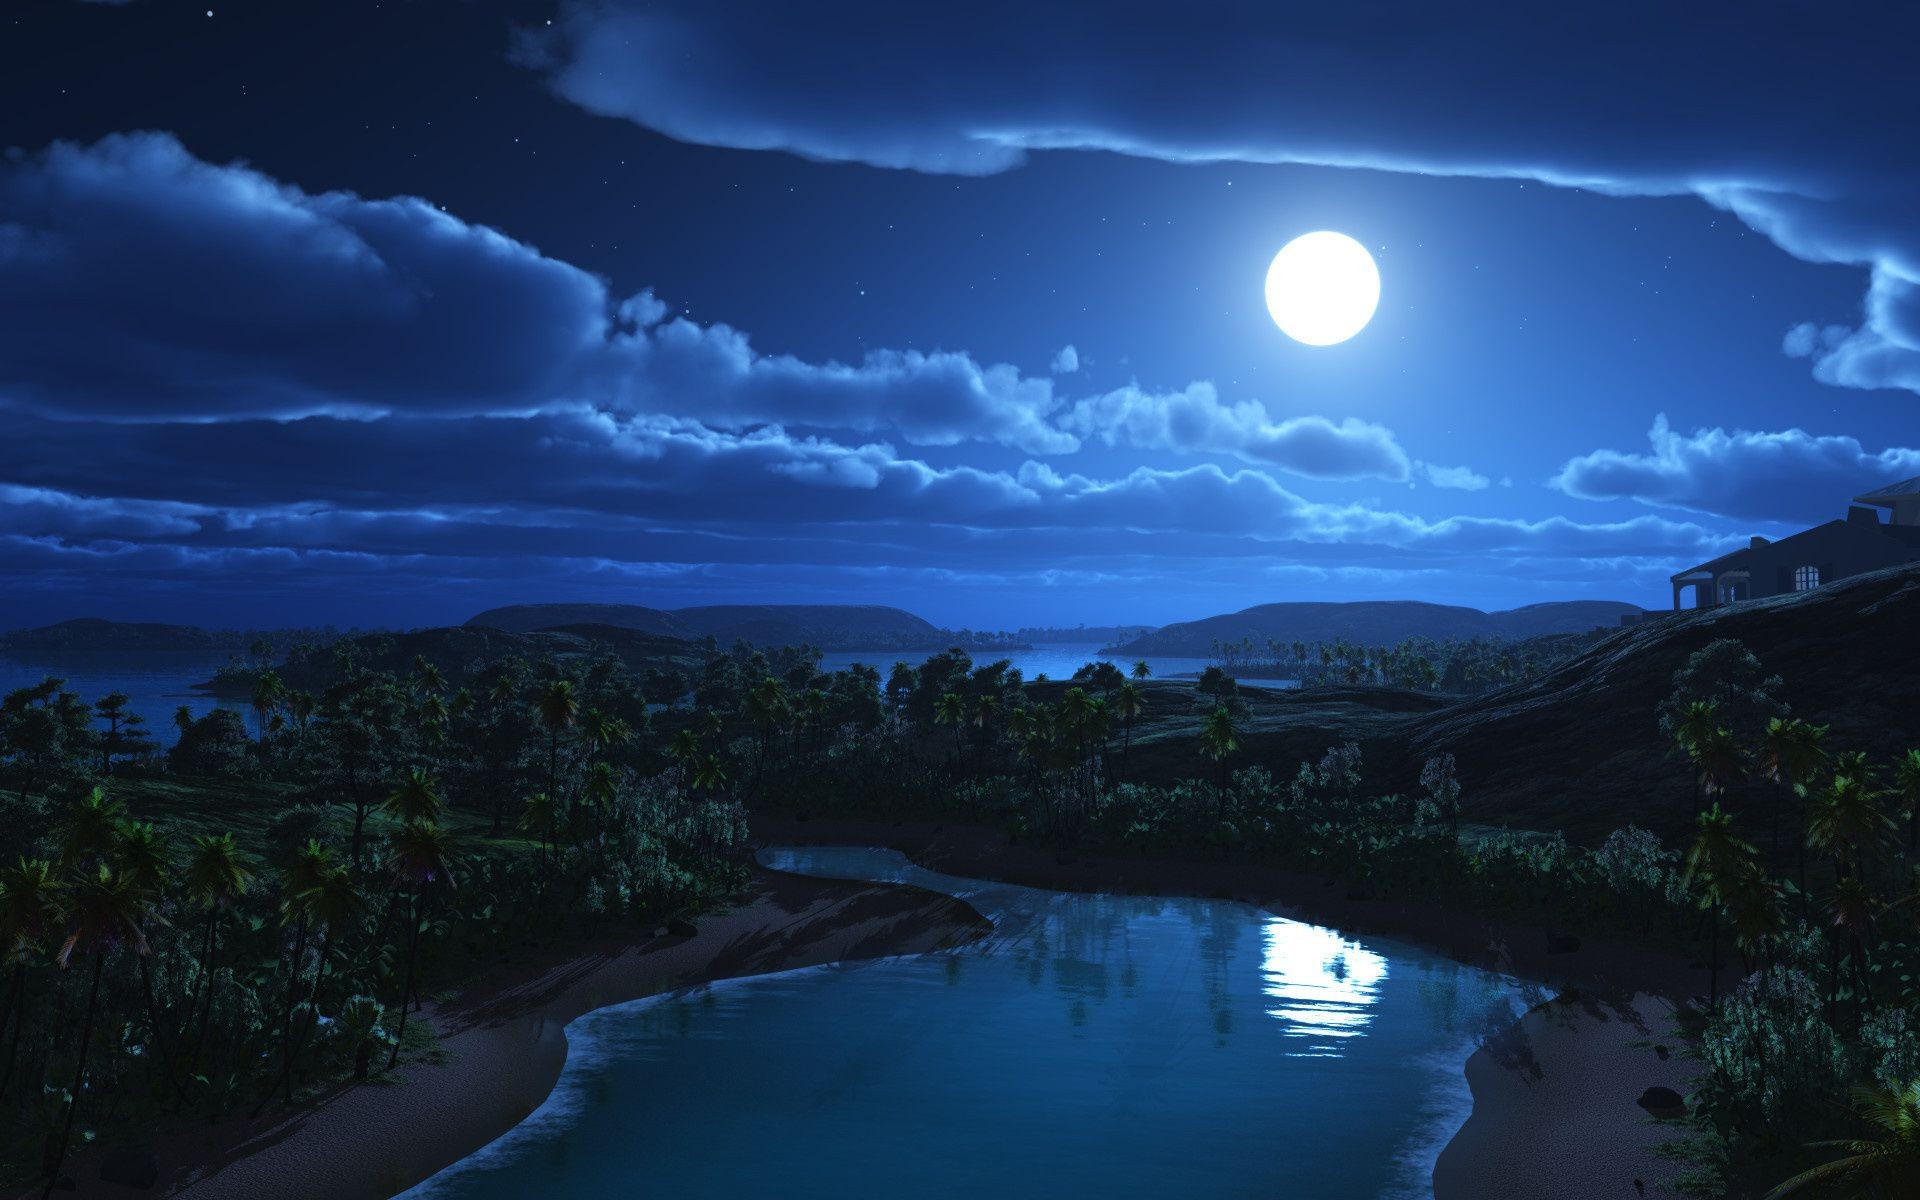 The hills, the moon and palm trees. Beautiful night landscape